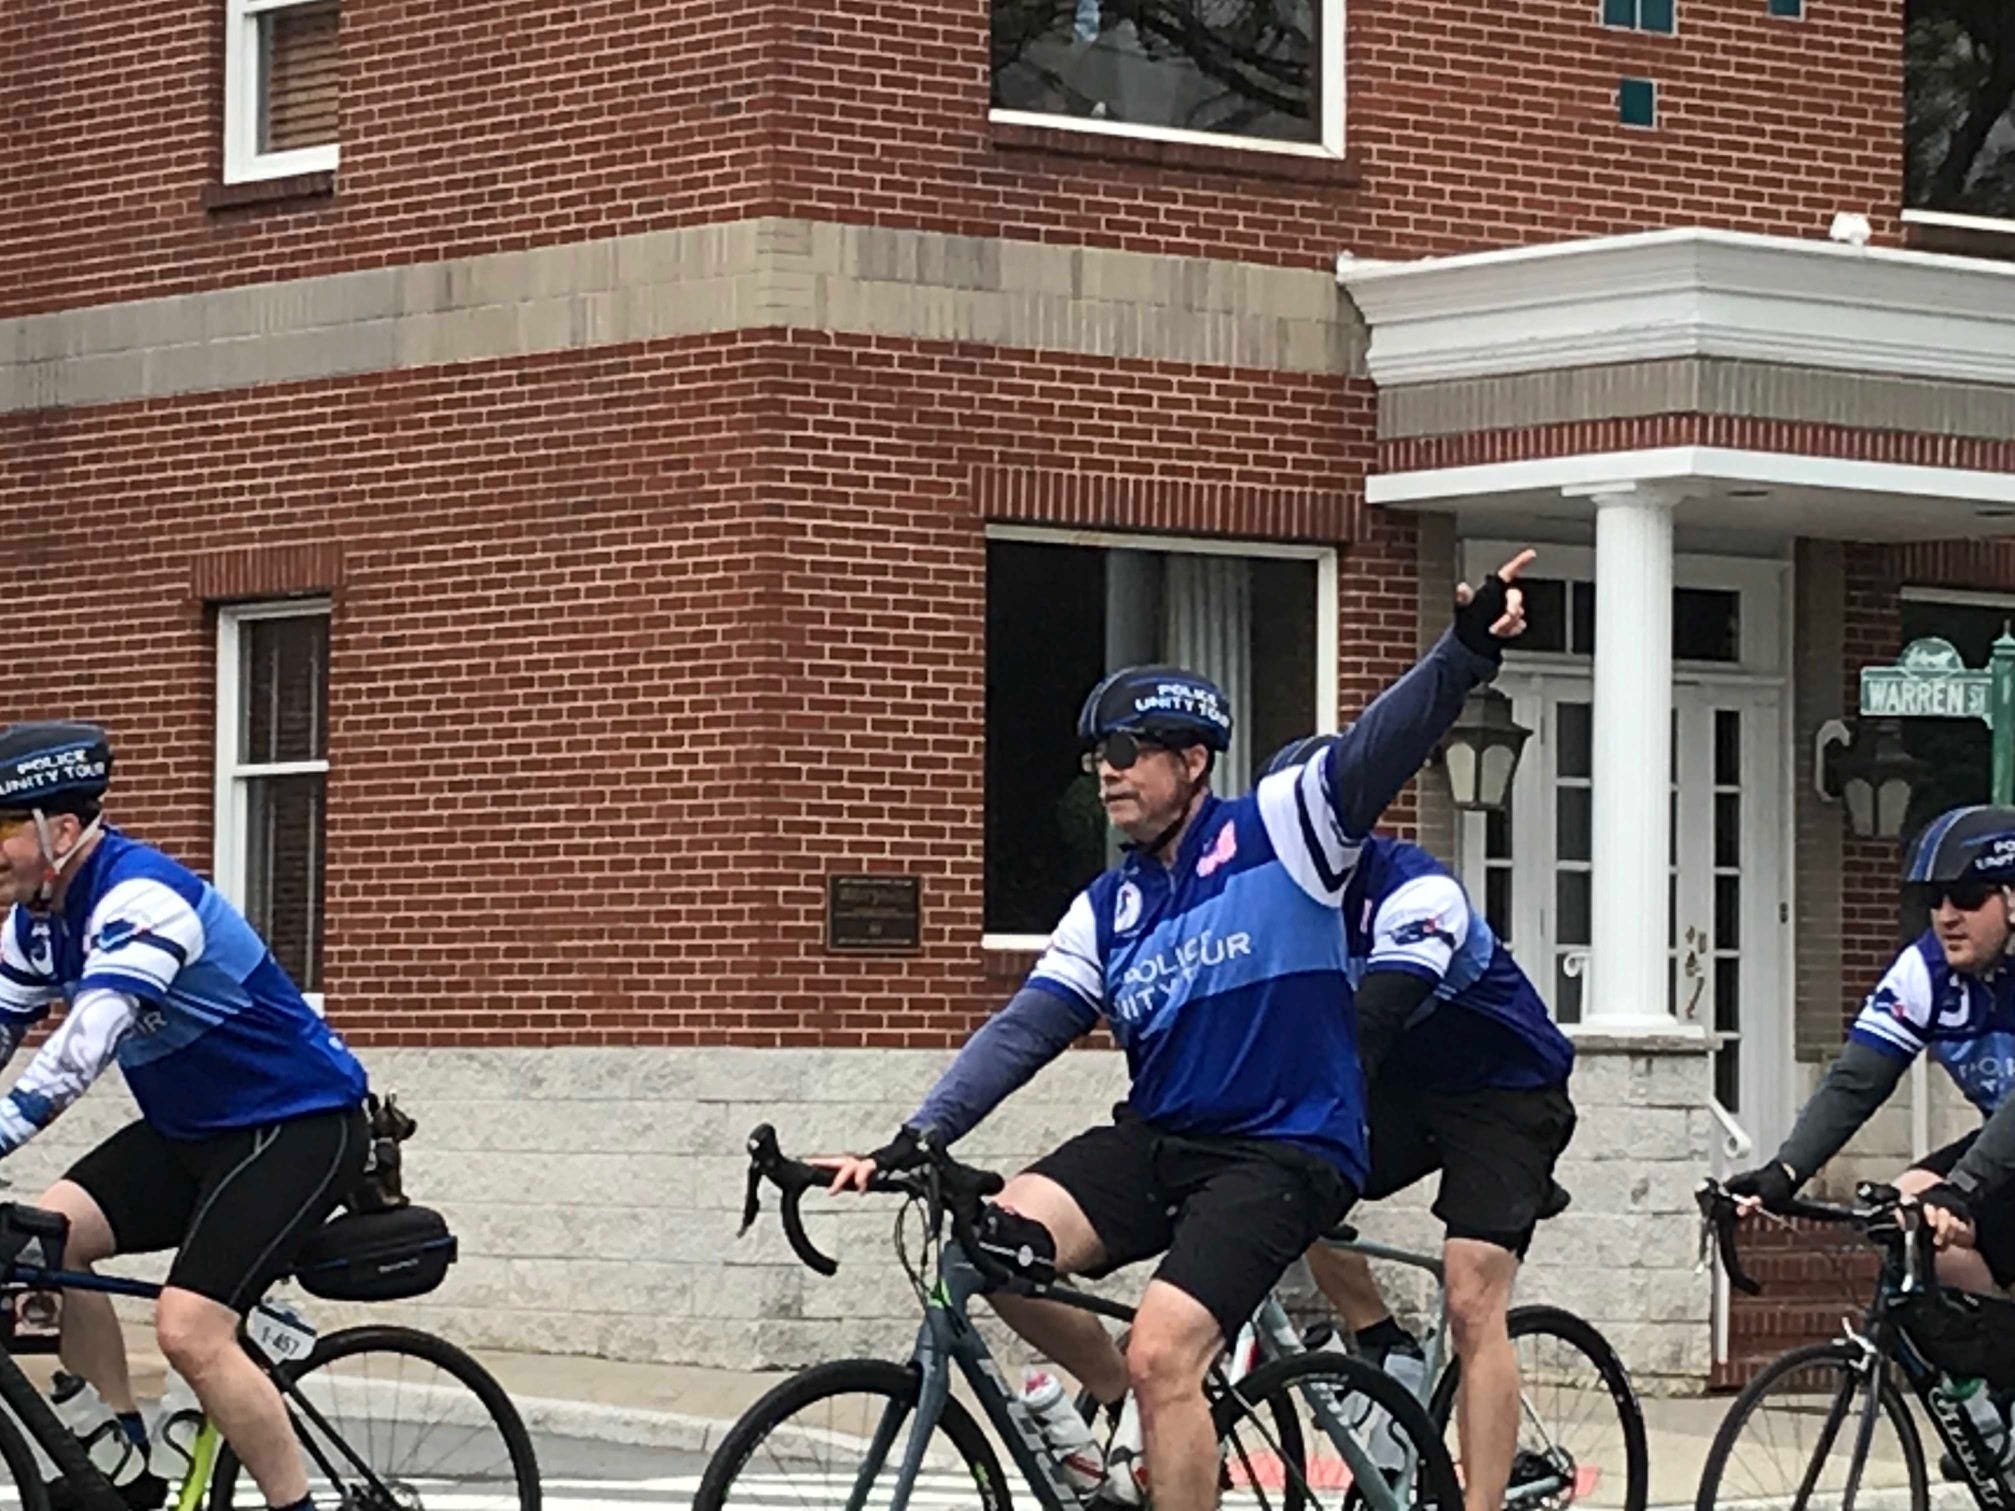 Hundreds of riders participated in the Police Unity Tour that traveled through Somerville on Thursday.